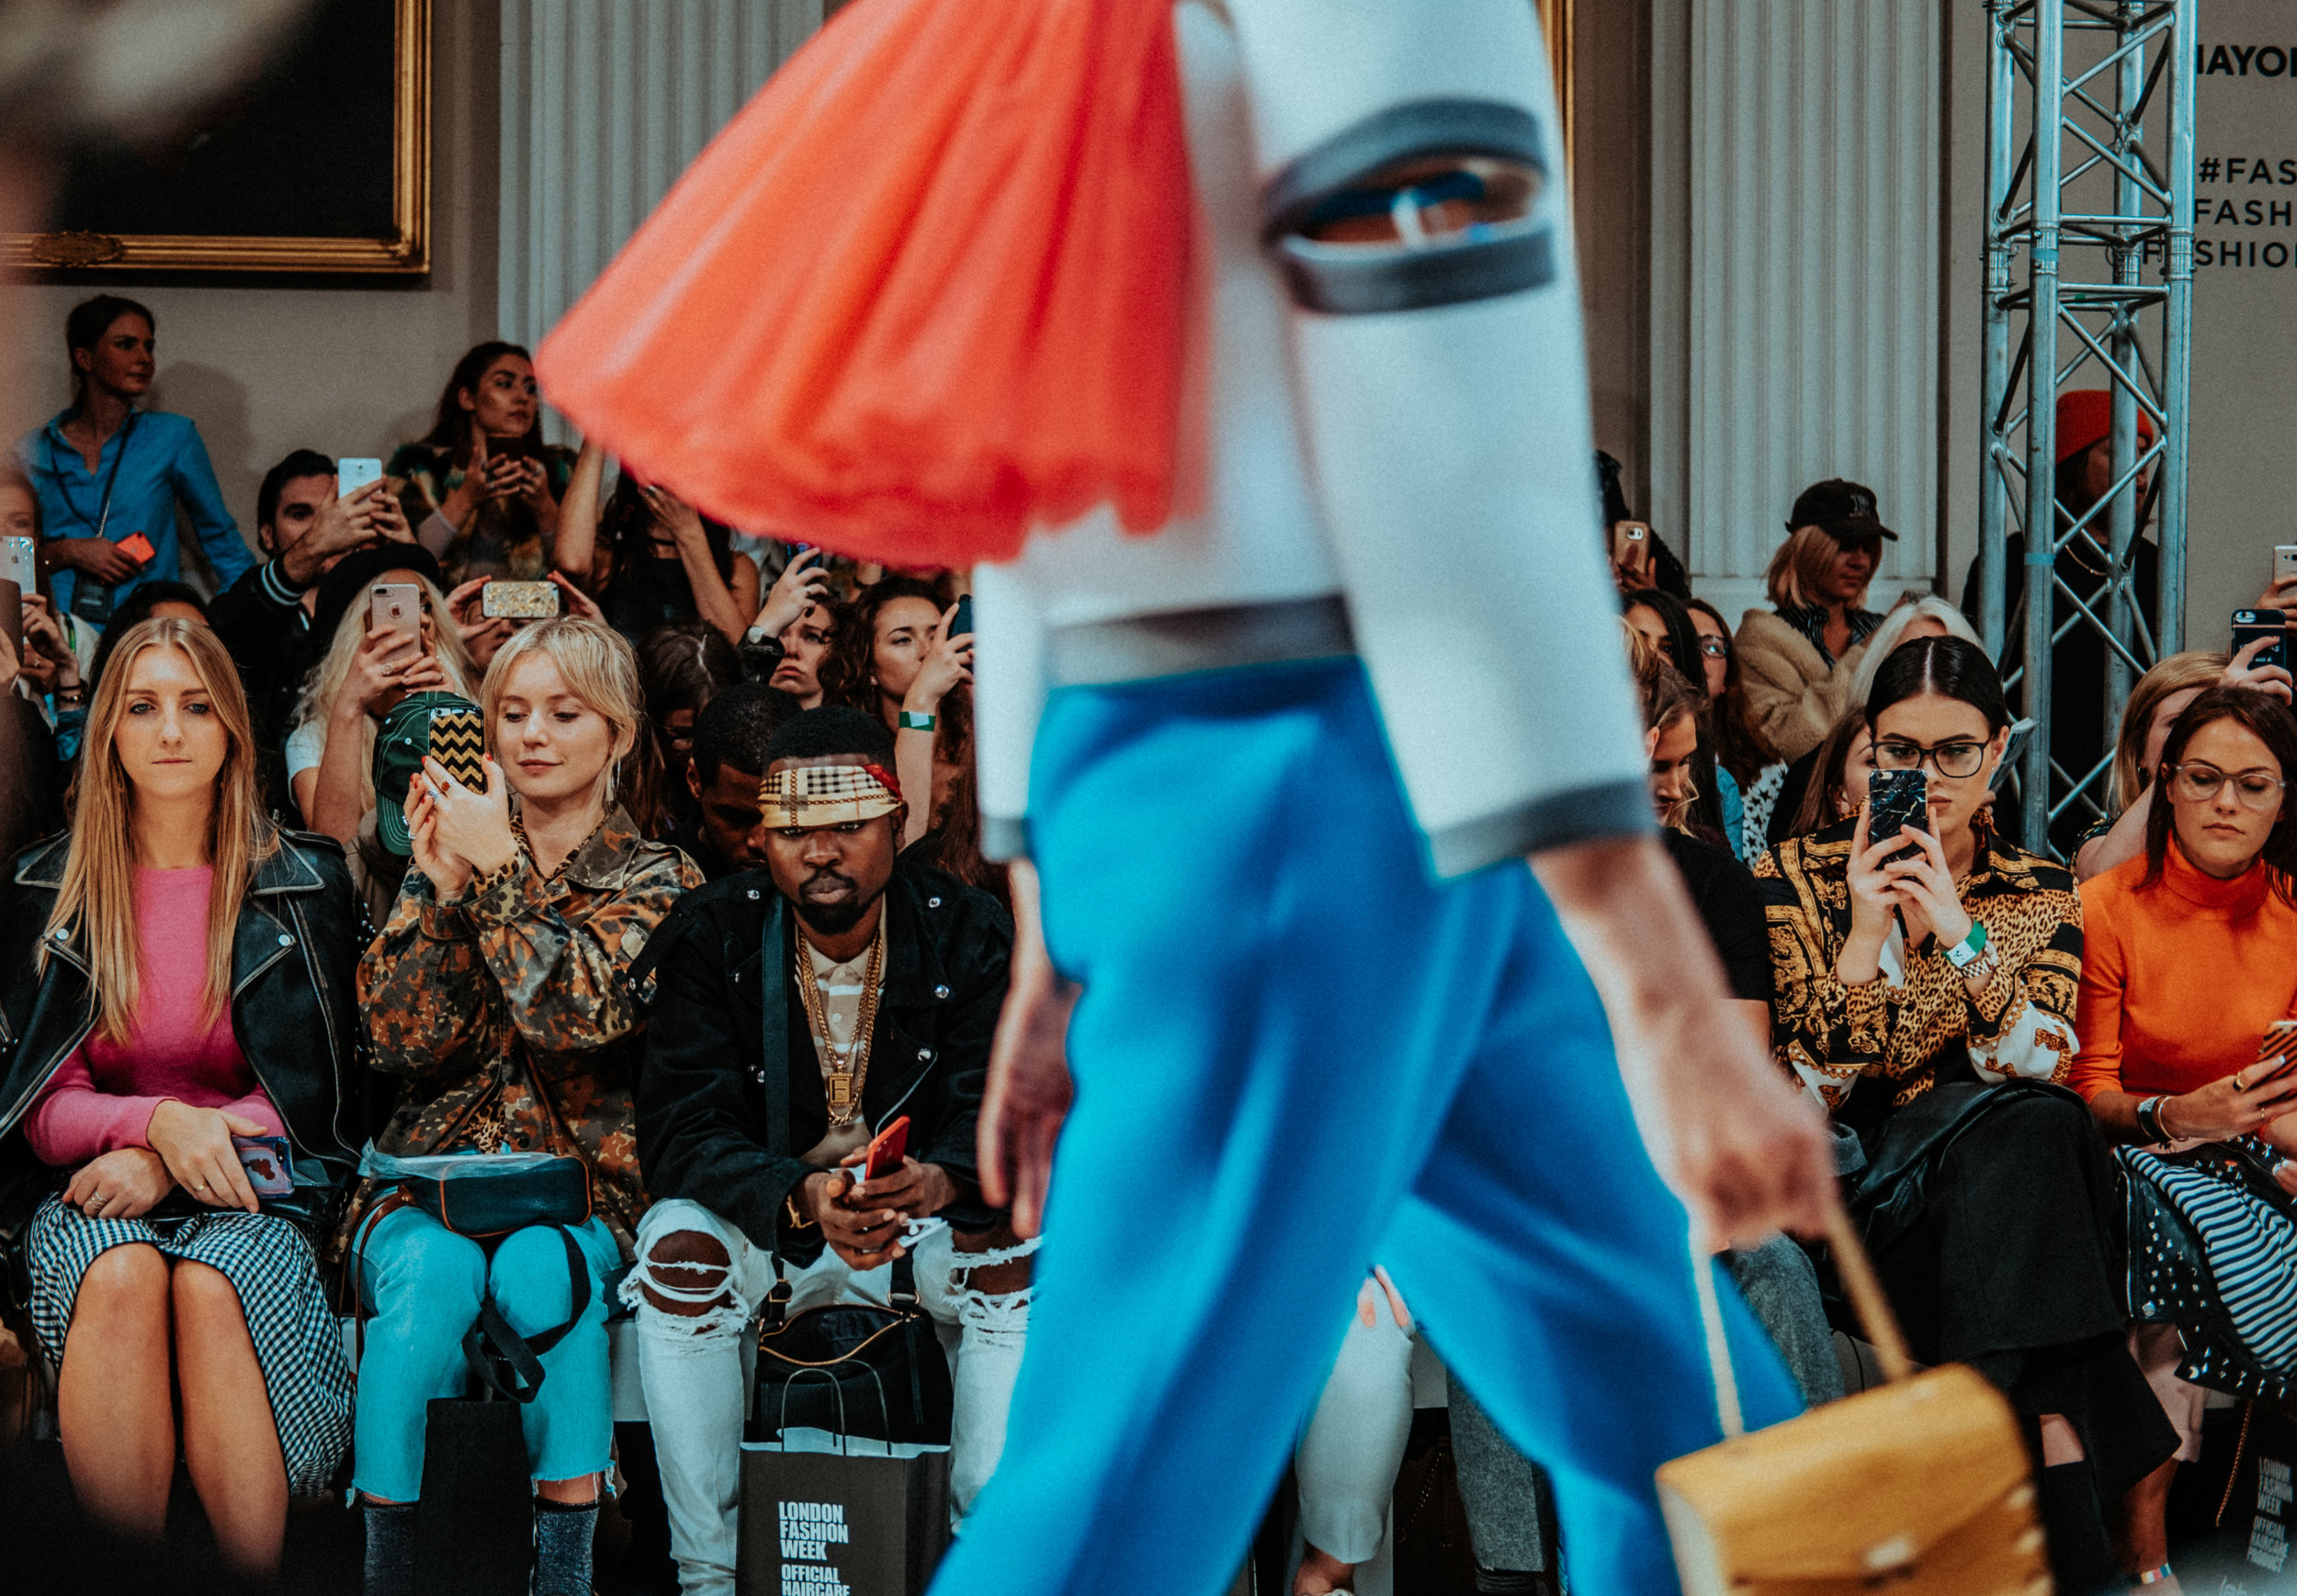 """London has become the first of the main fashion weeks to ditch animal fur in its shows after the British Fashion Council… said none of the designers participating on the official schedule would be using it."" - - Scarlett Conlon, The Guardian, Sep. 7, 2018"